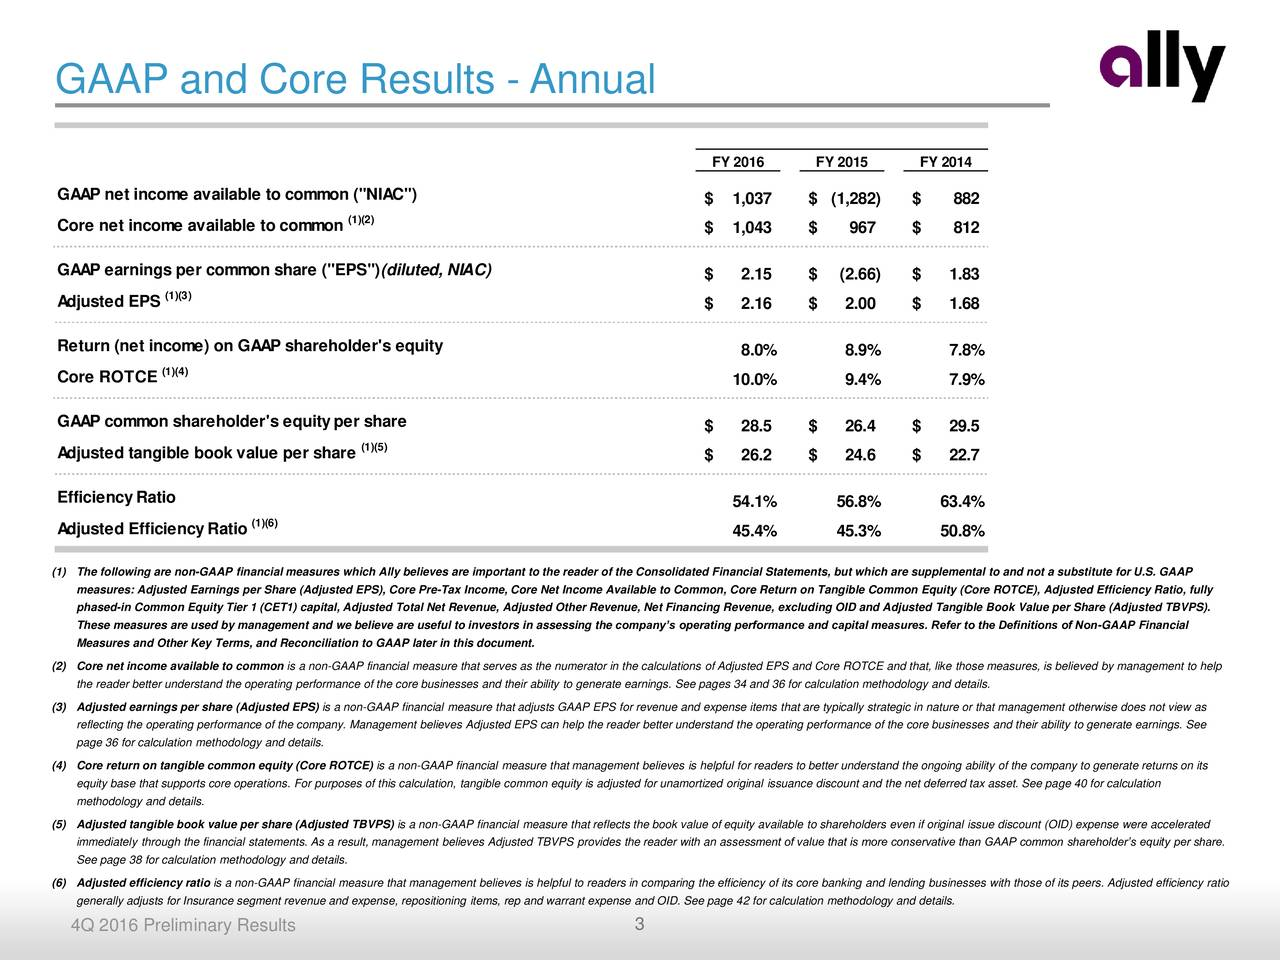 "FY 2016 FY 2015 FY 2014 GAAP net income available to common (""NIAC"") $ 1,037 $ (1,282) $ 882 (1)(2) Core net income available to common $ 1,043 $ 967 $ 812 GAAP earnings per common share (""EPS"")(diluted, NIAC) $ 2.15 $ (2.66) $ 1.83 (1)(3) Adjusted EPS $ 2.16 $ 2.00 $ 1.68 Return (net income) on GAAP shareholder's equity 8.0% 8.9% 7.8% (1)(4) Core ROTCE 10.0% 9.4% 7.9% GAAP common shareholder's equityper share $ 28.5 $ 26.4 $ 29.5 Adjusted tangible book value per share (1)(5) $ 26.2 $ 24.6 $ 22.7 EfficiencyRatio 54.1% 56.8% 63.4% Adjusted EfficiencyRatio (1)(6) 45.4% 45.3% 50.8% (1) The following are non-GAAP financial measures which Ally believes are important to the reader of the Consolidated Financial Statements, but which are supplemental to and not a substitute for U.S. GAAP measures: Adjusted Earnings per Share (Adjusted EPS), Core Pre-Tax Income, Core Net Income Available to Common, Core Return on Tangible Common Equity (Core ROTCE), Adjusted Efficiency Ratio, fully phased-in Common Equity Tier 1 (CET1) capital, Adjusted Total Net Revenue, Adjusted Other Revenue, Net Financing Revenue, excluding OID and Adjusted Tangible Book Value per Share (Adjusted TBVPS). These measures are used by management and we believe are useful to investors in assessing the companys operating performance and capital measures. Refer to the Definitions of Non-GAAP Financial Measures and Other Key Terms, and Reconciliation to GAAP later in this document. (2) Core net income available to common is a non-GAAP financial measure that serves as the numerator in the calculations of Adjusted EPS and Core ROTCE and that, like those measures, is believed by management to help the reader better understand the operating performance of the core businesses and their ability to generate earnings. See pages 34 and 36 for calculation methodology and details. (3) Adjusted earnings per share (Adjusted EPS) is a non-GAAP financial measure that adjusts GAAP EPS for revenue and expense items that are typically strategic in nature or that management otherwise does not view as reflecting the operating performance of the company. Management believes Adjusted EPS can help the reader better understand the operating performance of the core businesses and their ability to generate earnings. See page 36 for calculation methodology and details. (4) Core return on tangible common equity (Core ROTCE) is a non-GAAP financial measure that management believes is helpful for readers to better understand the ongoing ability of the company to generate returns on its equity base that supports core operations. For purposes of this calculation, tangible common equity is adjusted for unamortized original issuance discount and the net deferred tax asset. See page 40 for calculation methodology and details. (5) Adjusted tangible book value per share (Adjusted TBVPS) is a non-GAAP financial measure that reflects the book value of equity available to shareholders even if original issue discount (OID) expense were accelerated immediately through the financial statements. As a result, management believes Adjusted TBVPS provides the reader with an assessment of value that is more conservative than GAAP common shareholders equity per share. See page 38 for calculation methodology and details. (6) Adjusted efficiency ratio is a non-GAAP financial measure that management believes is helpful to readers in comparing the efficiency of its core banking and lending businesses with those of its peers. Adjusted efficiency ratio generally adjusts for Insurance segment revenue and expense, repositioning items, rep and warrant expense and OID. See page 42 for calculation methodology and details. 4Q 2016 Preliminary Results 3"